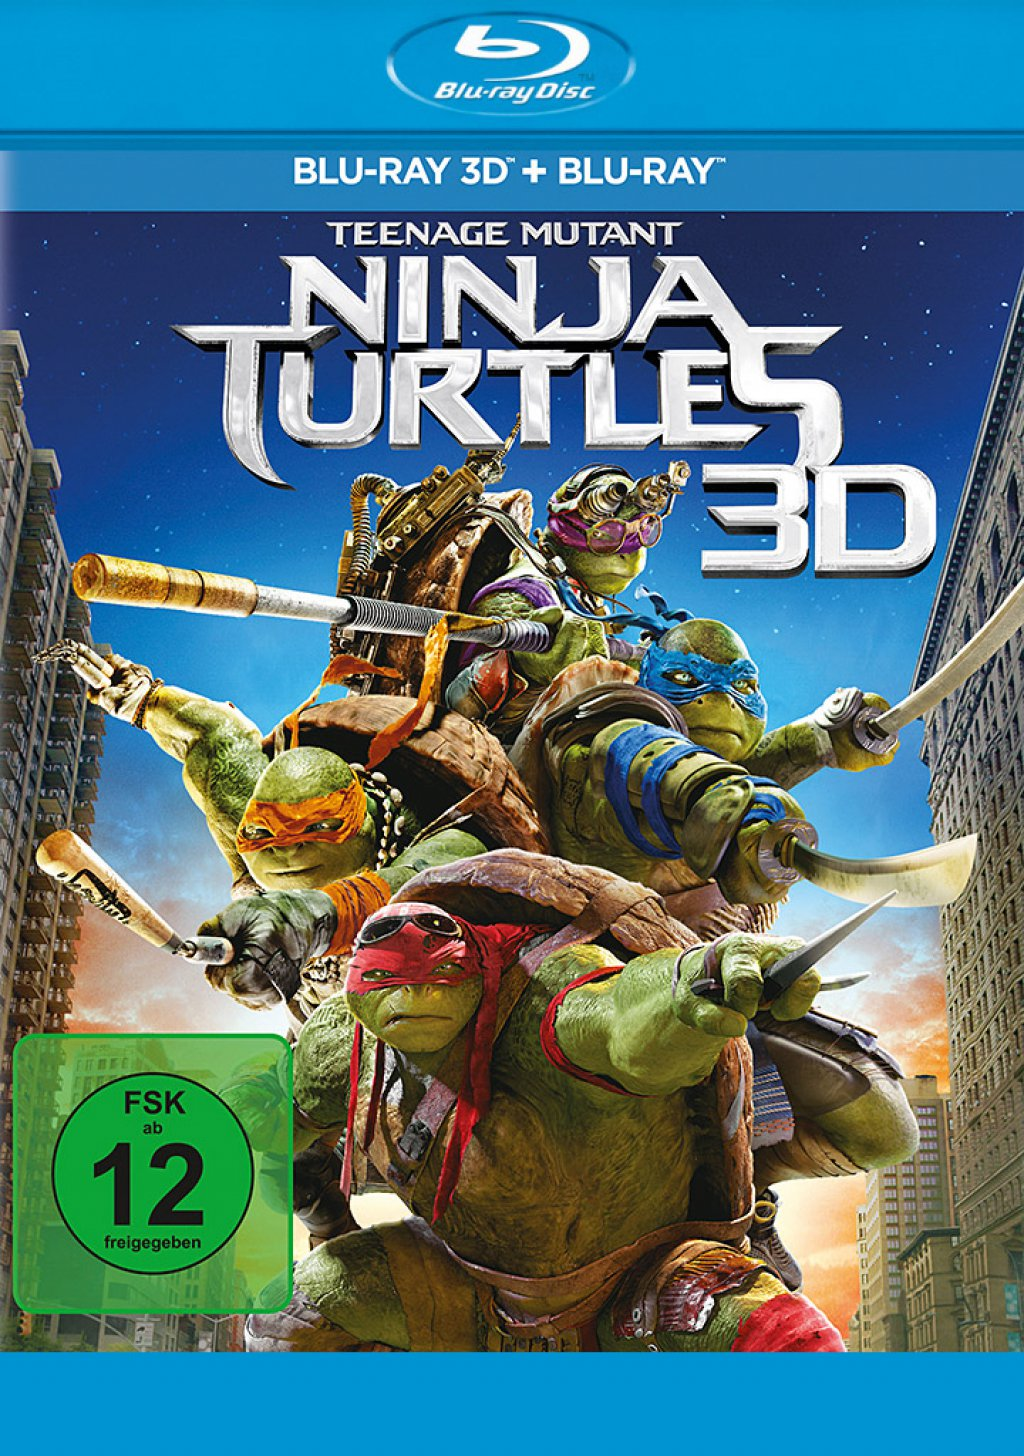 Teenage Mutant Ninja Turtles - Blu-ray 3D + 2D (Blu-ray)